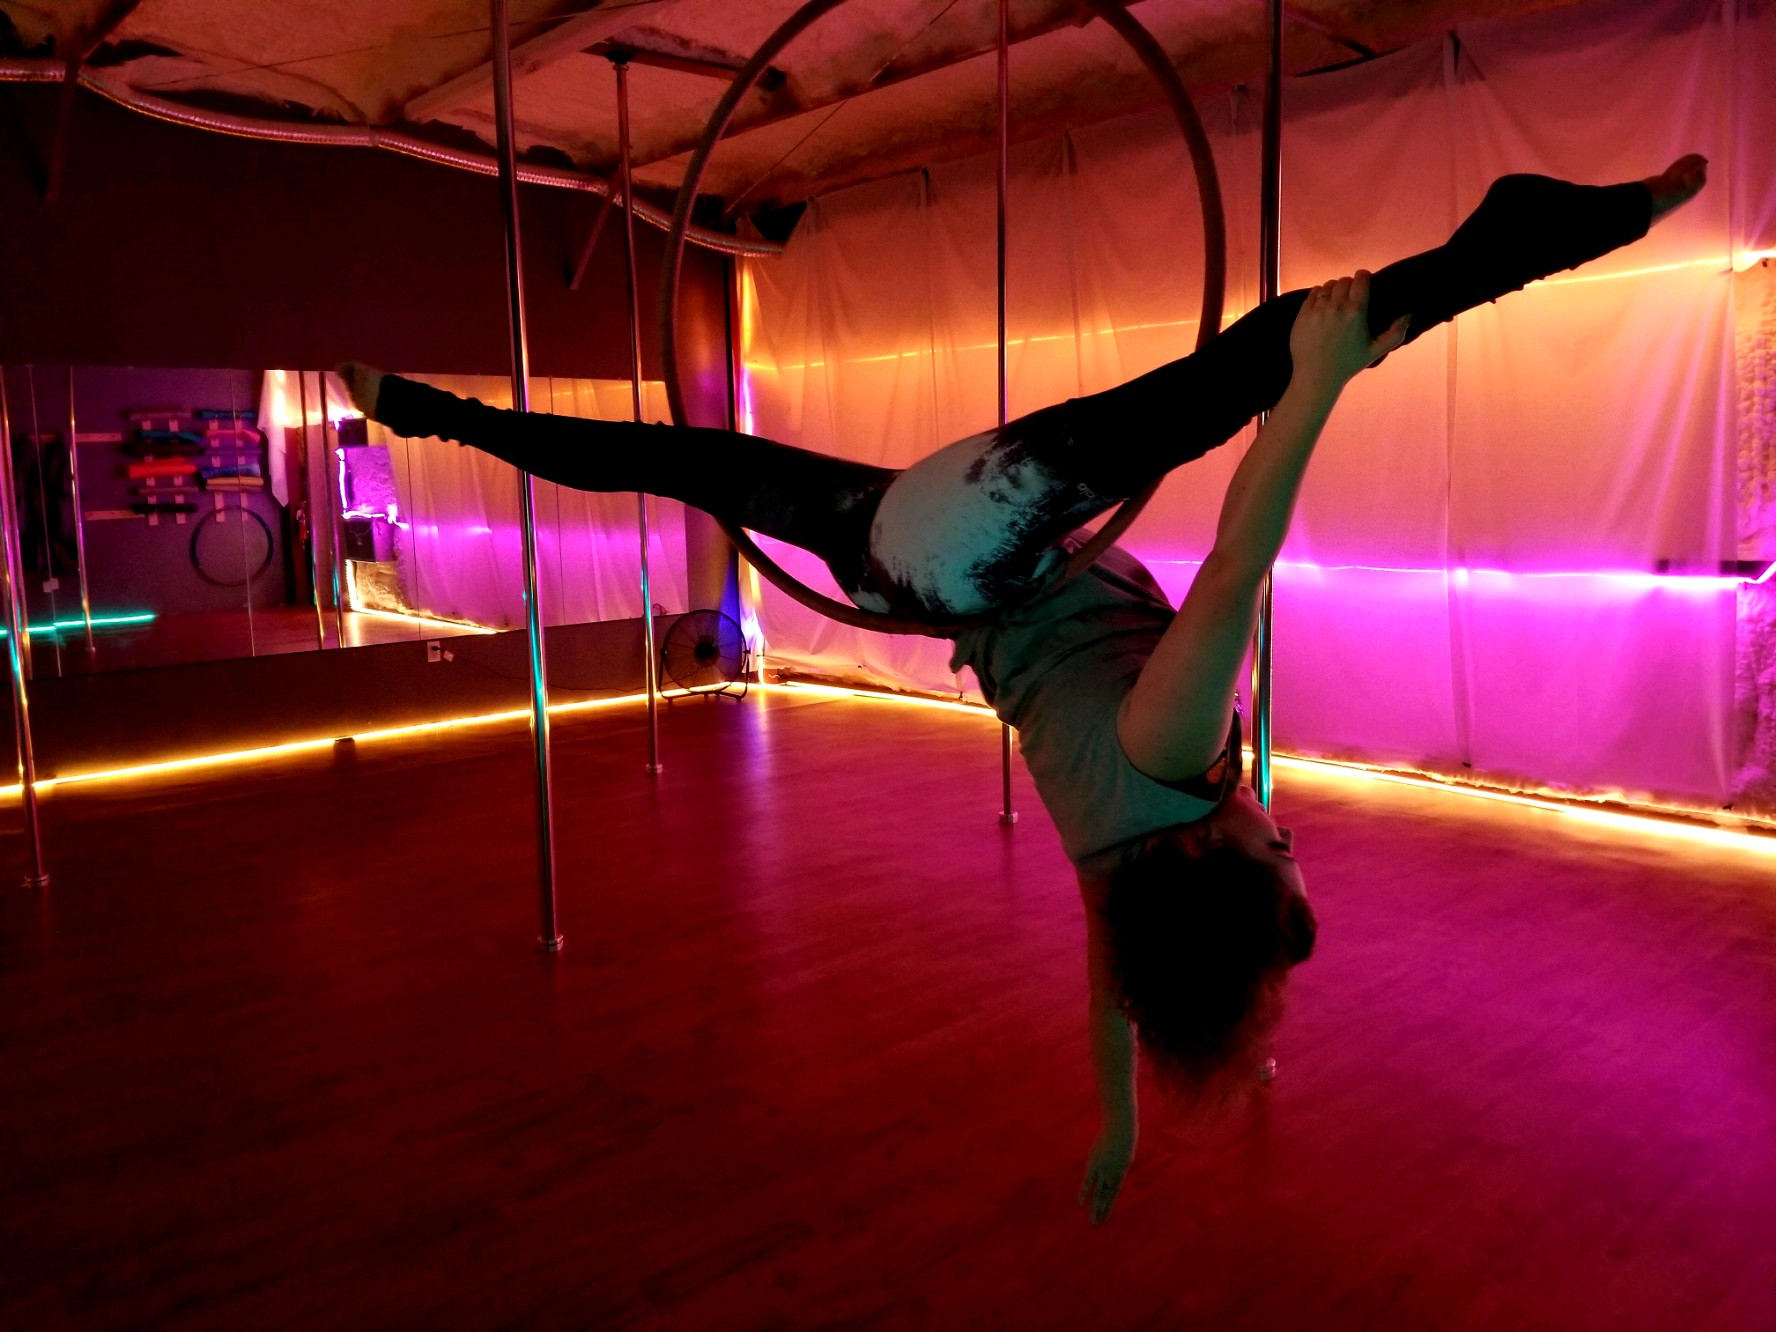 Meaghan Keel - AERIAL HOOP & HAMMOCKCIRQUEFIT LYRA CERTIFIED INSTRUCTOR 2018Meaghan did not discover aerial until she was 28 years old. She did not grow up playing sports or dancing so she regularly struggled with finding a workout she could stick to. After having her second child, she found aerial and instantly fell in love with the art. One of the reasons she loves aerial is because it makes you feel beautiful and feminine, which is something many women struggle with.